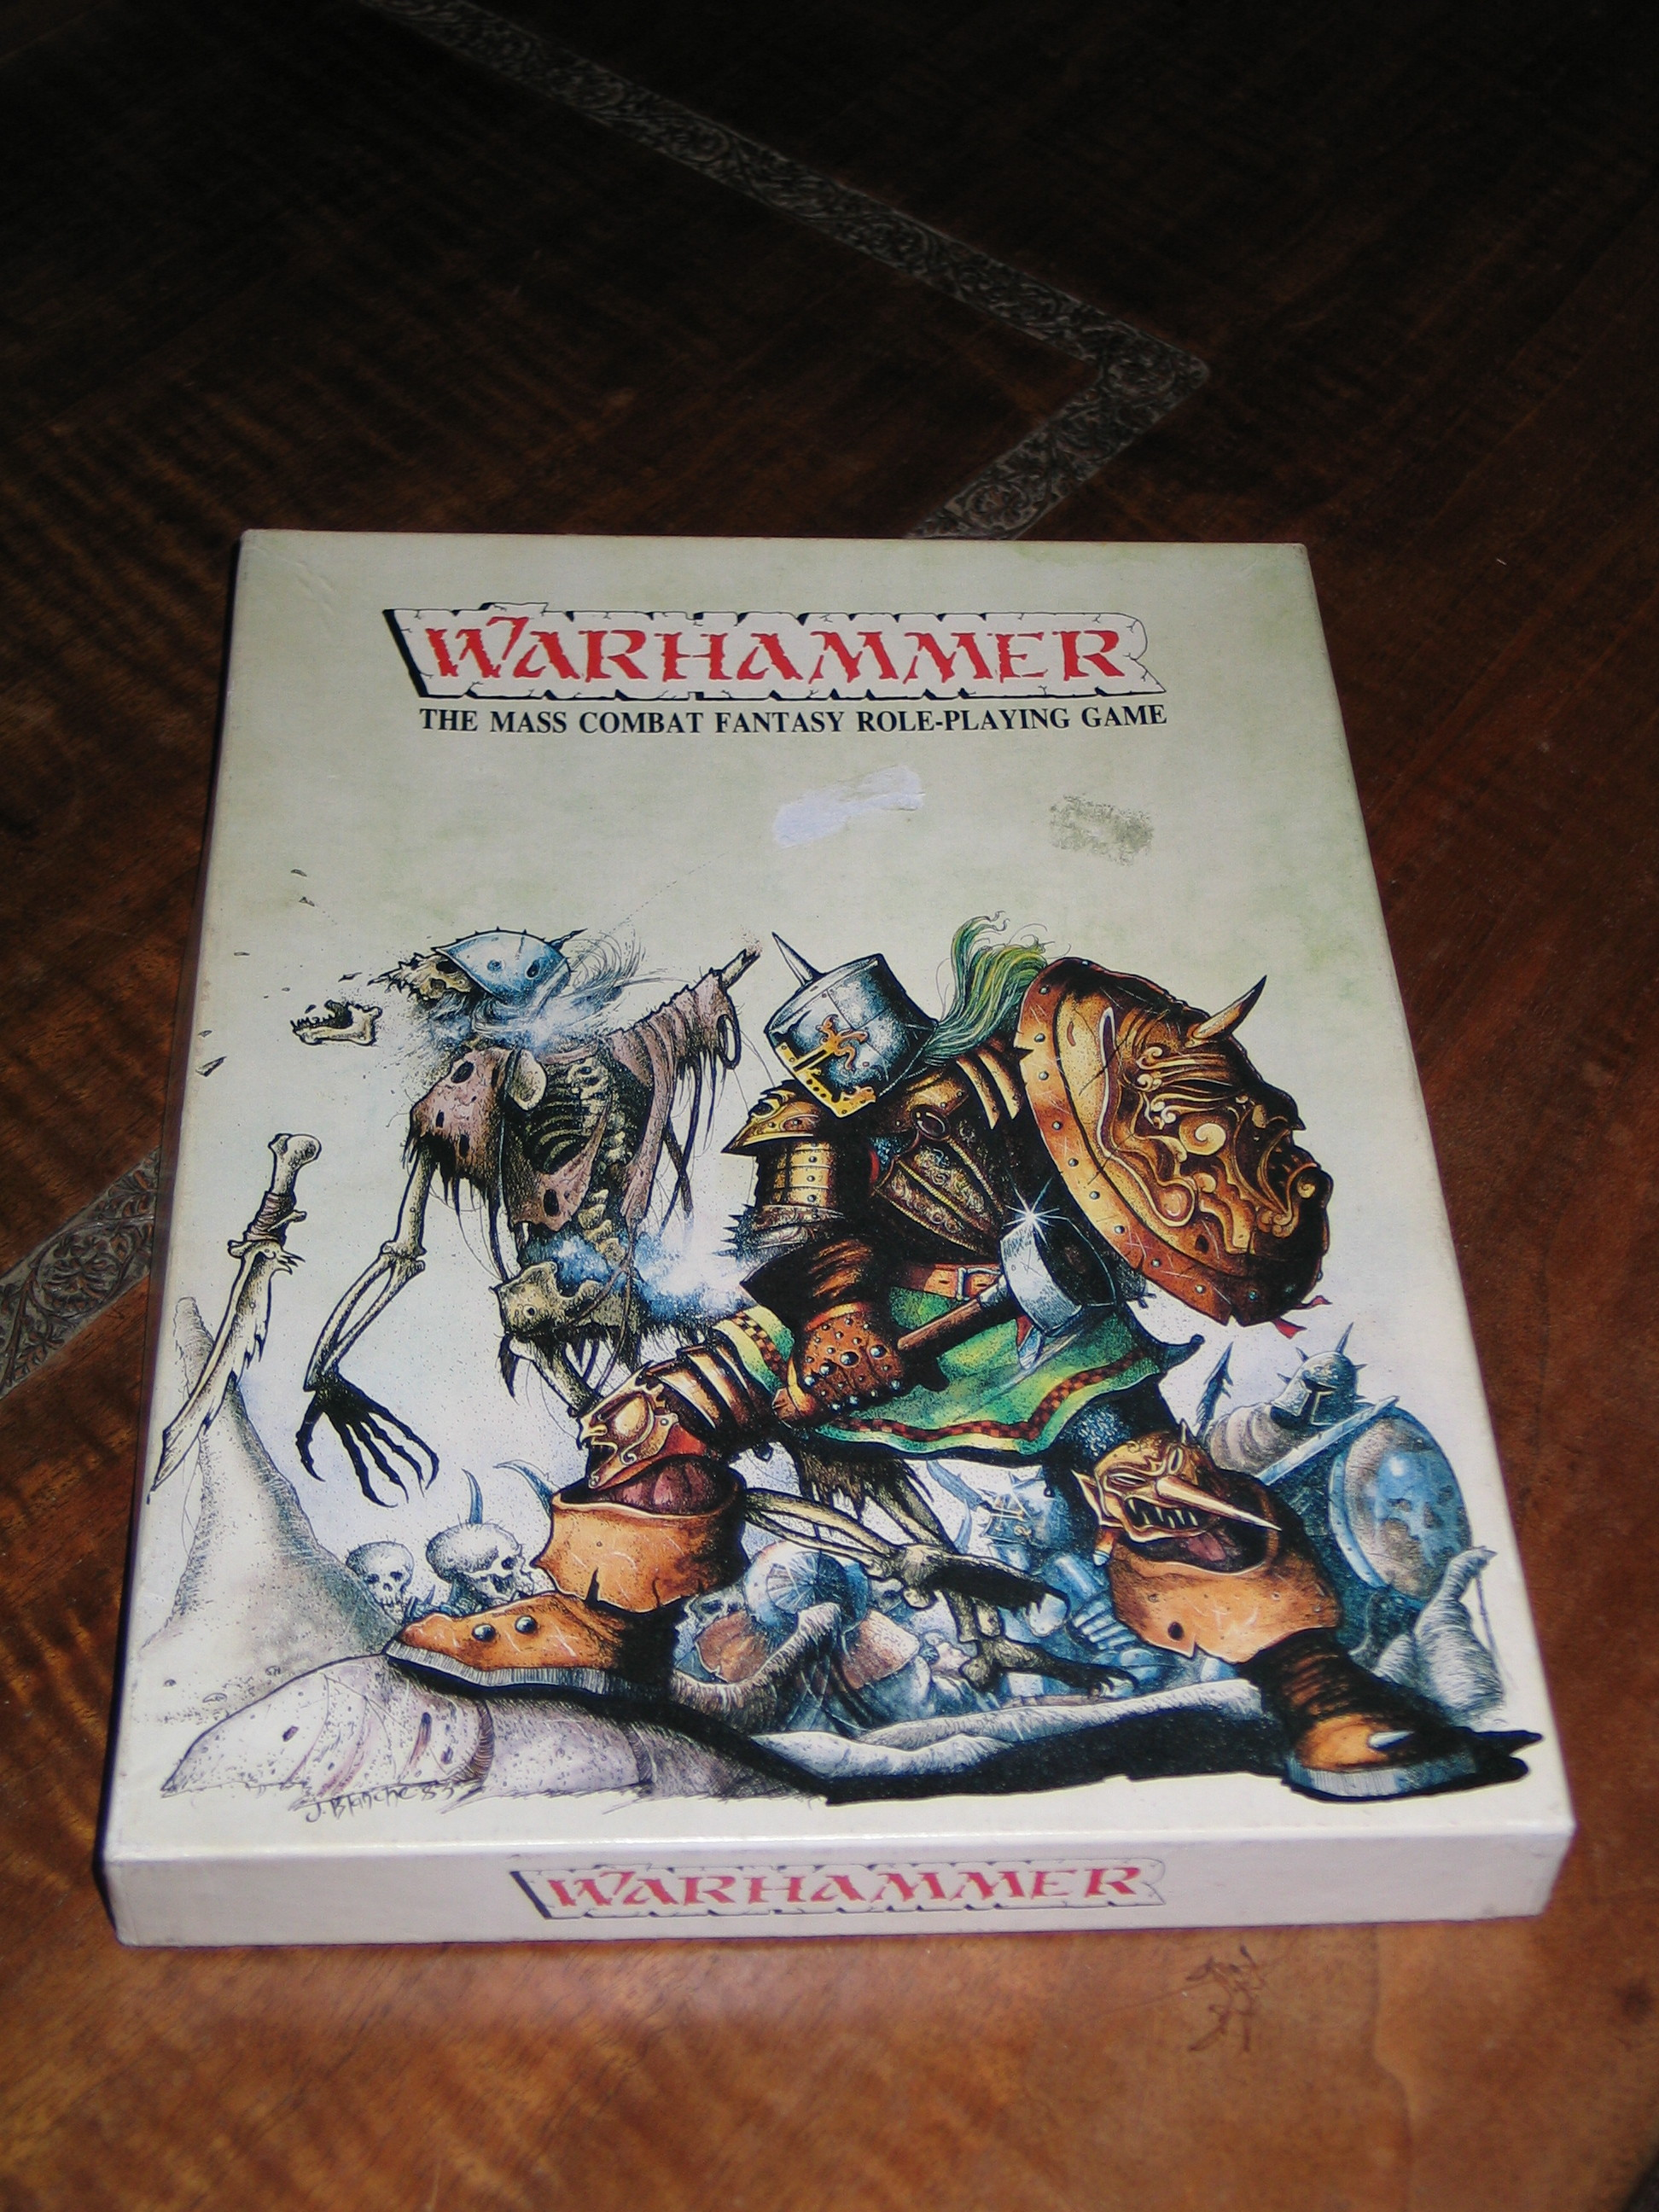 Warhammer 1st Edition - Box Art